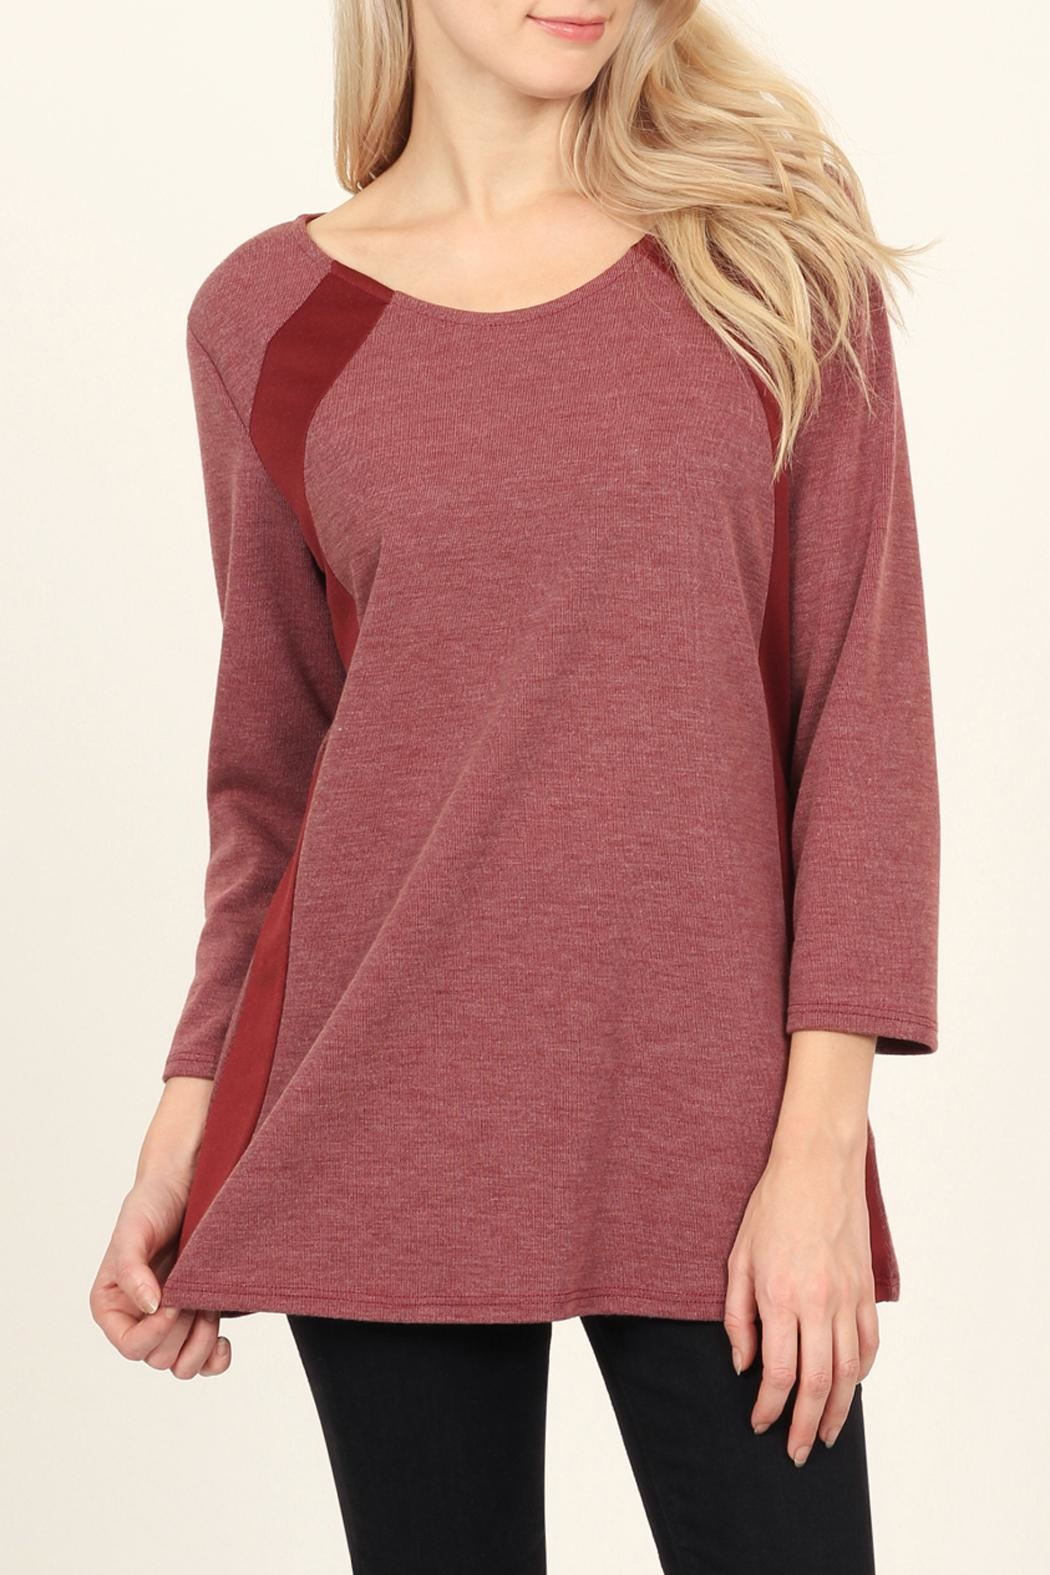 Riah Fashion Side-Accented Round-Neck Classic-Top - Front Full Image